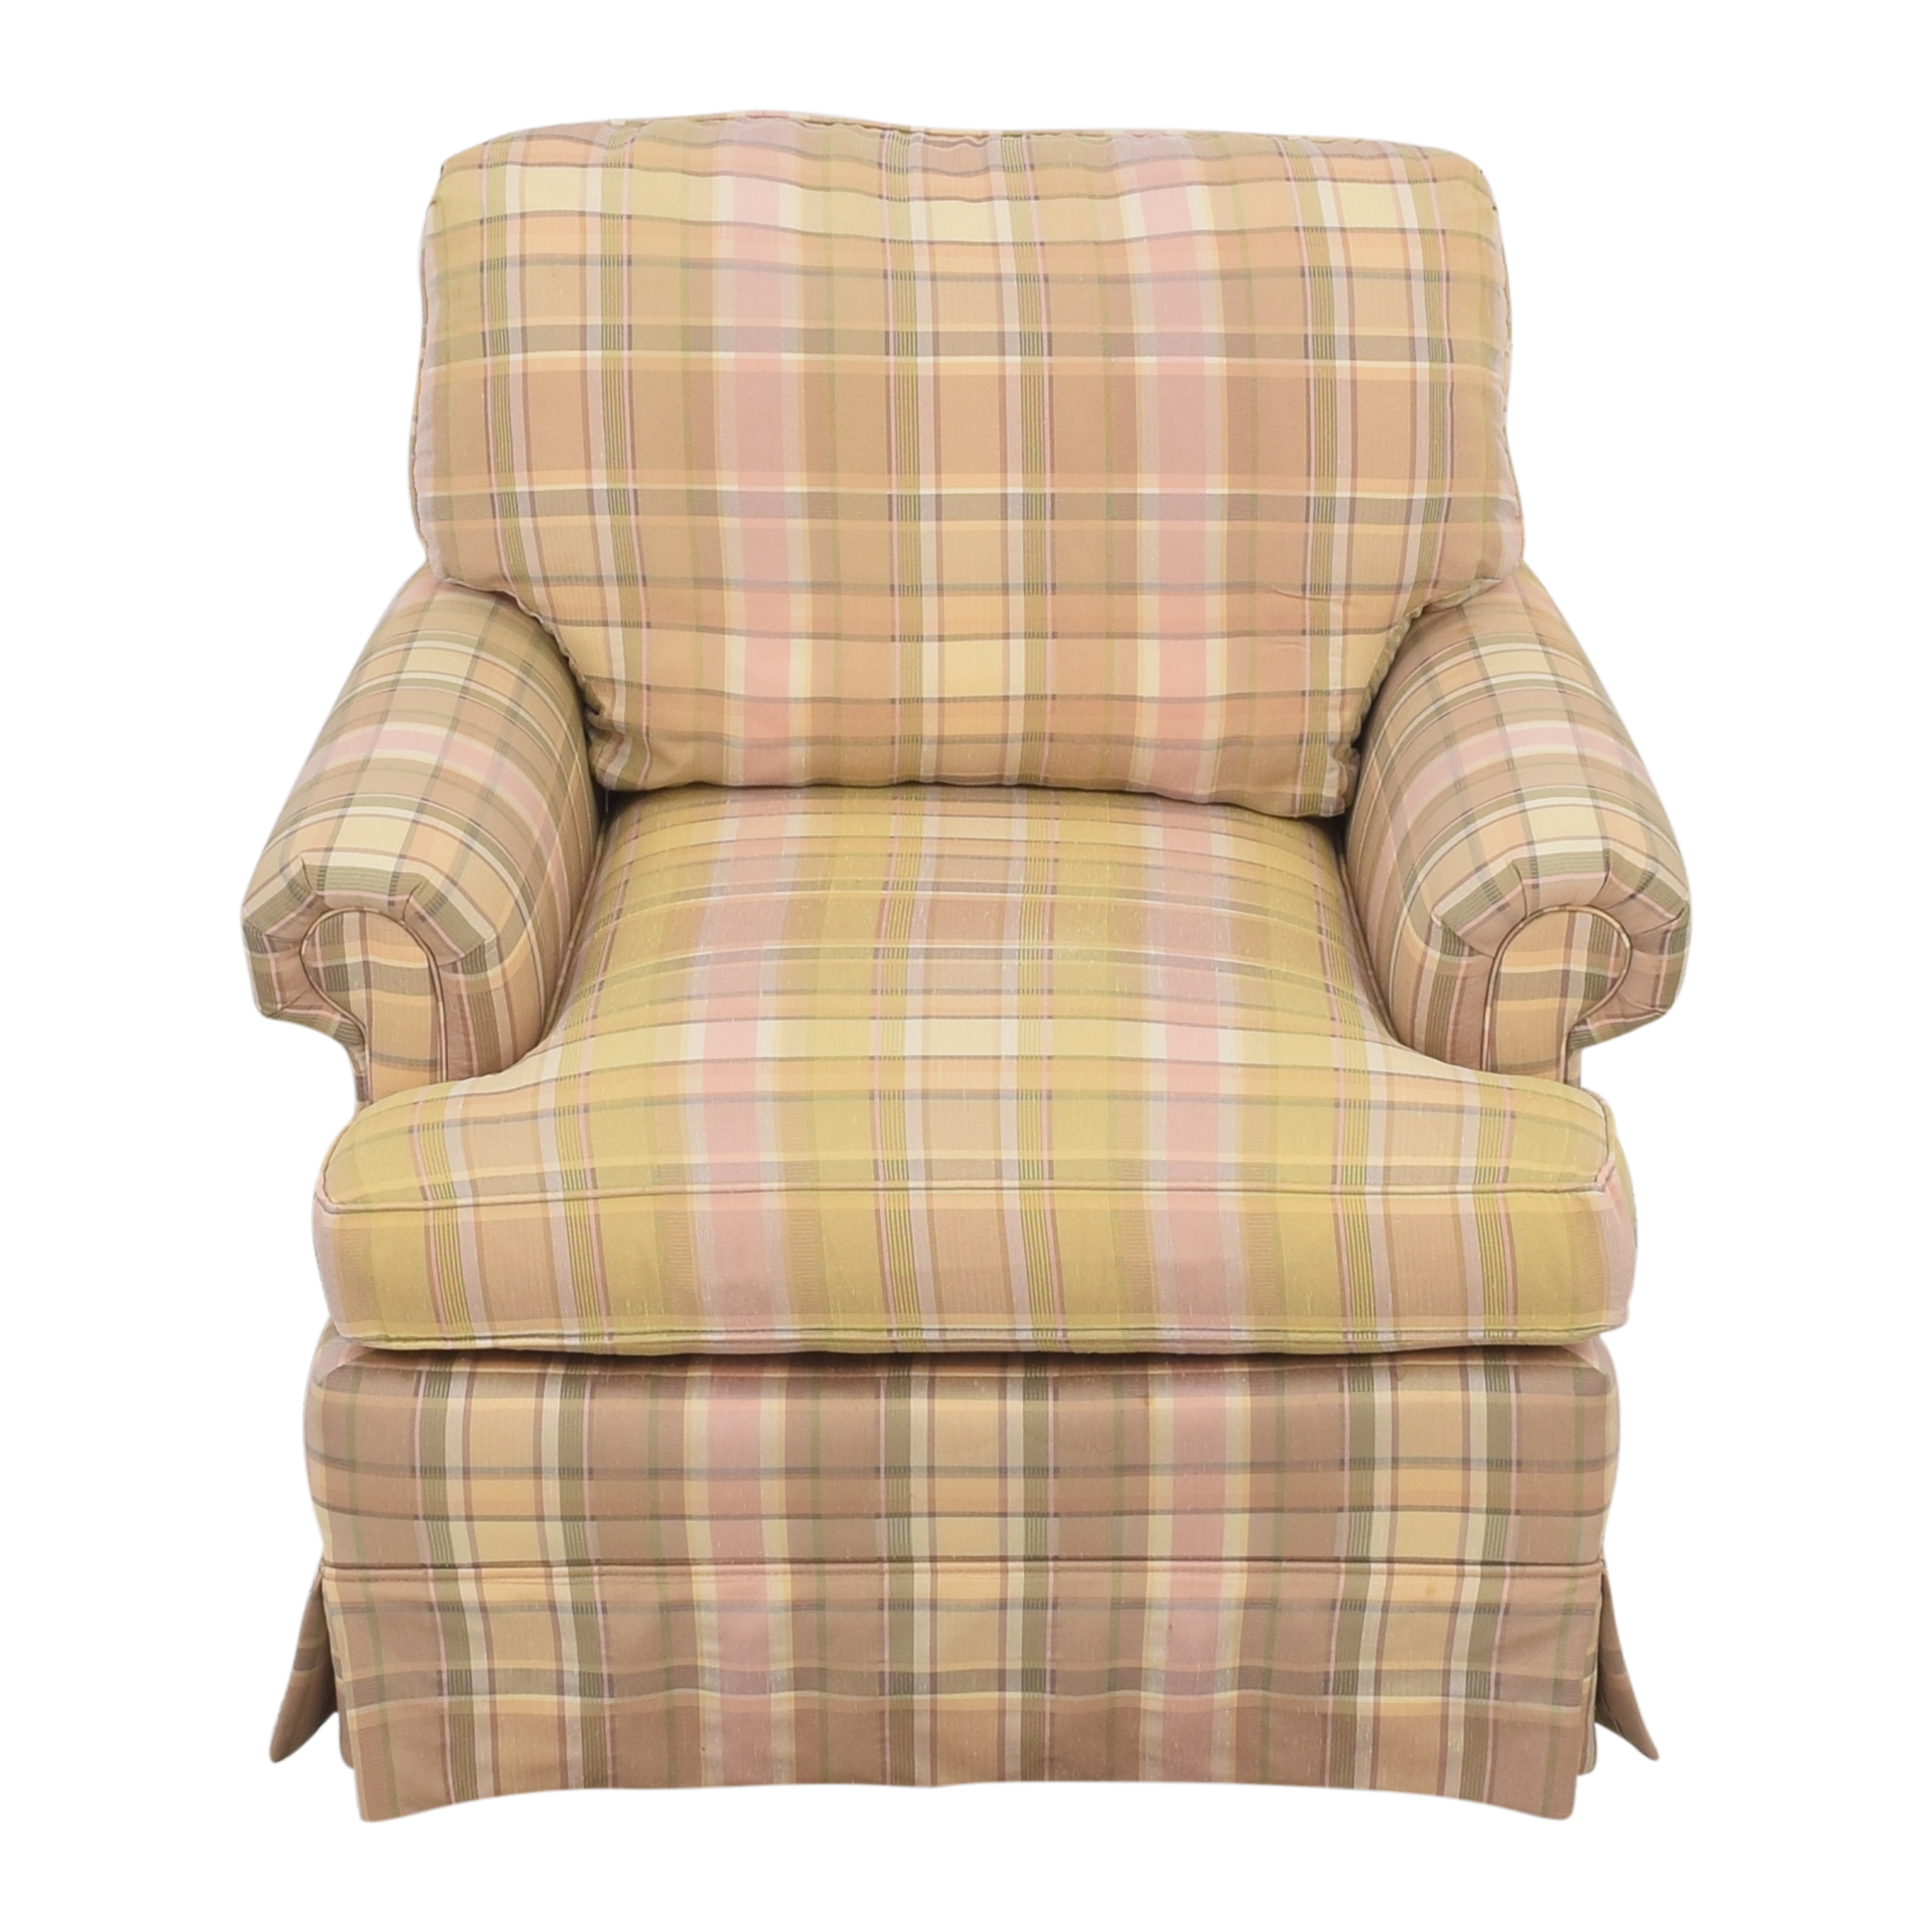 Thomasville Thomasville Skirted Plaid Chair coupon